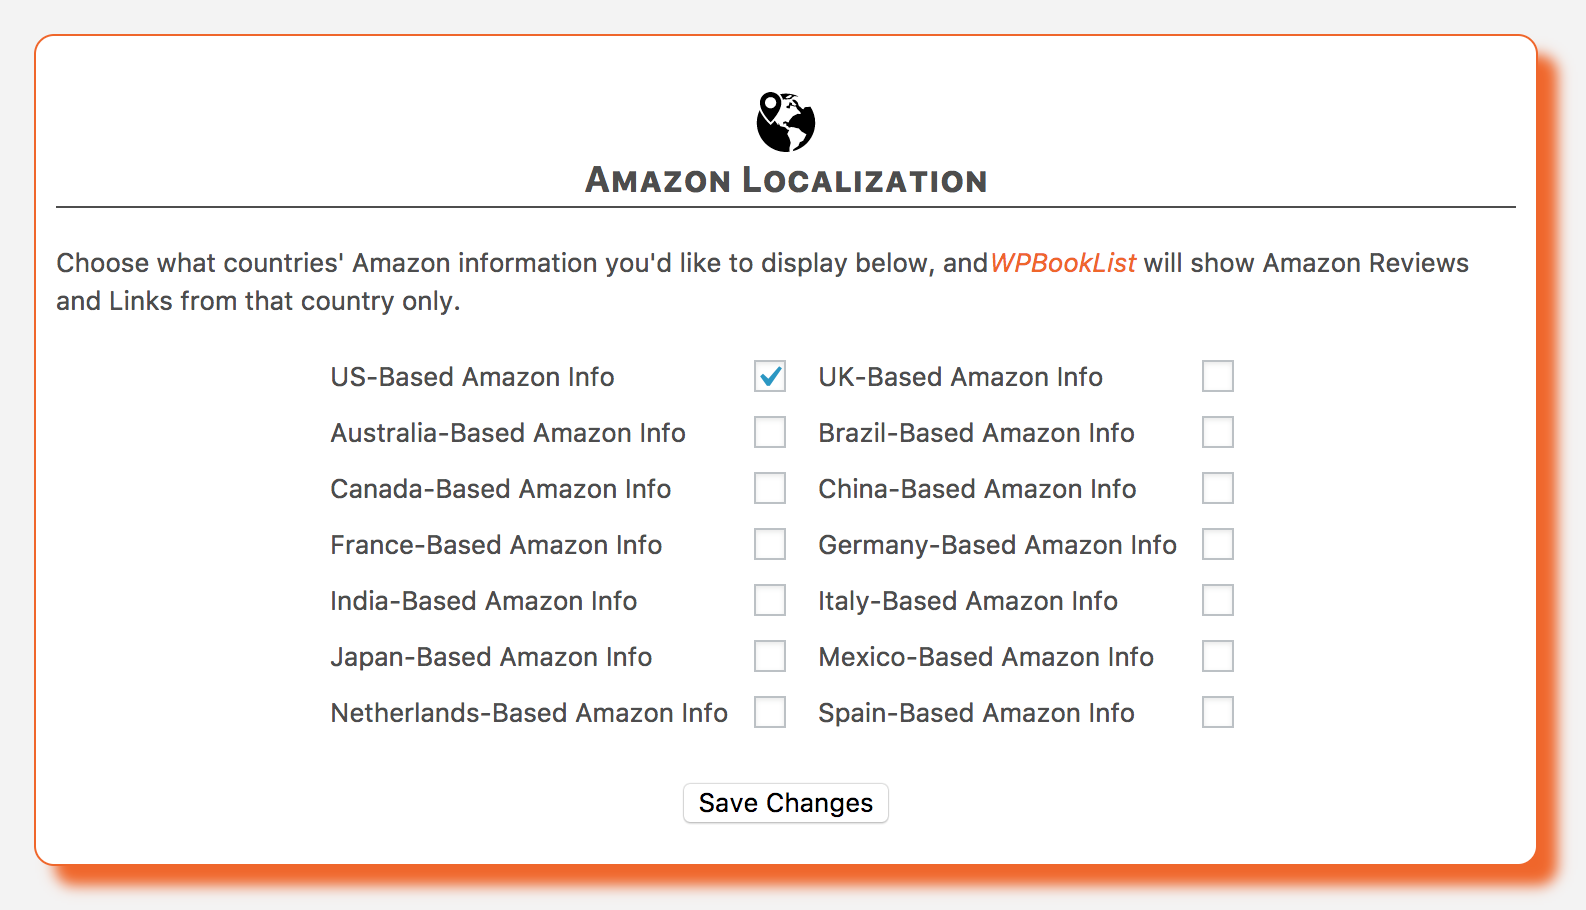 The Amazon Localization options, allowing you to set your Amazon reviews and links based on country.